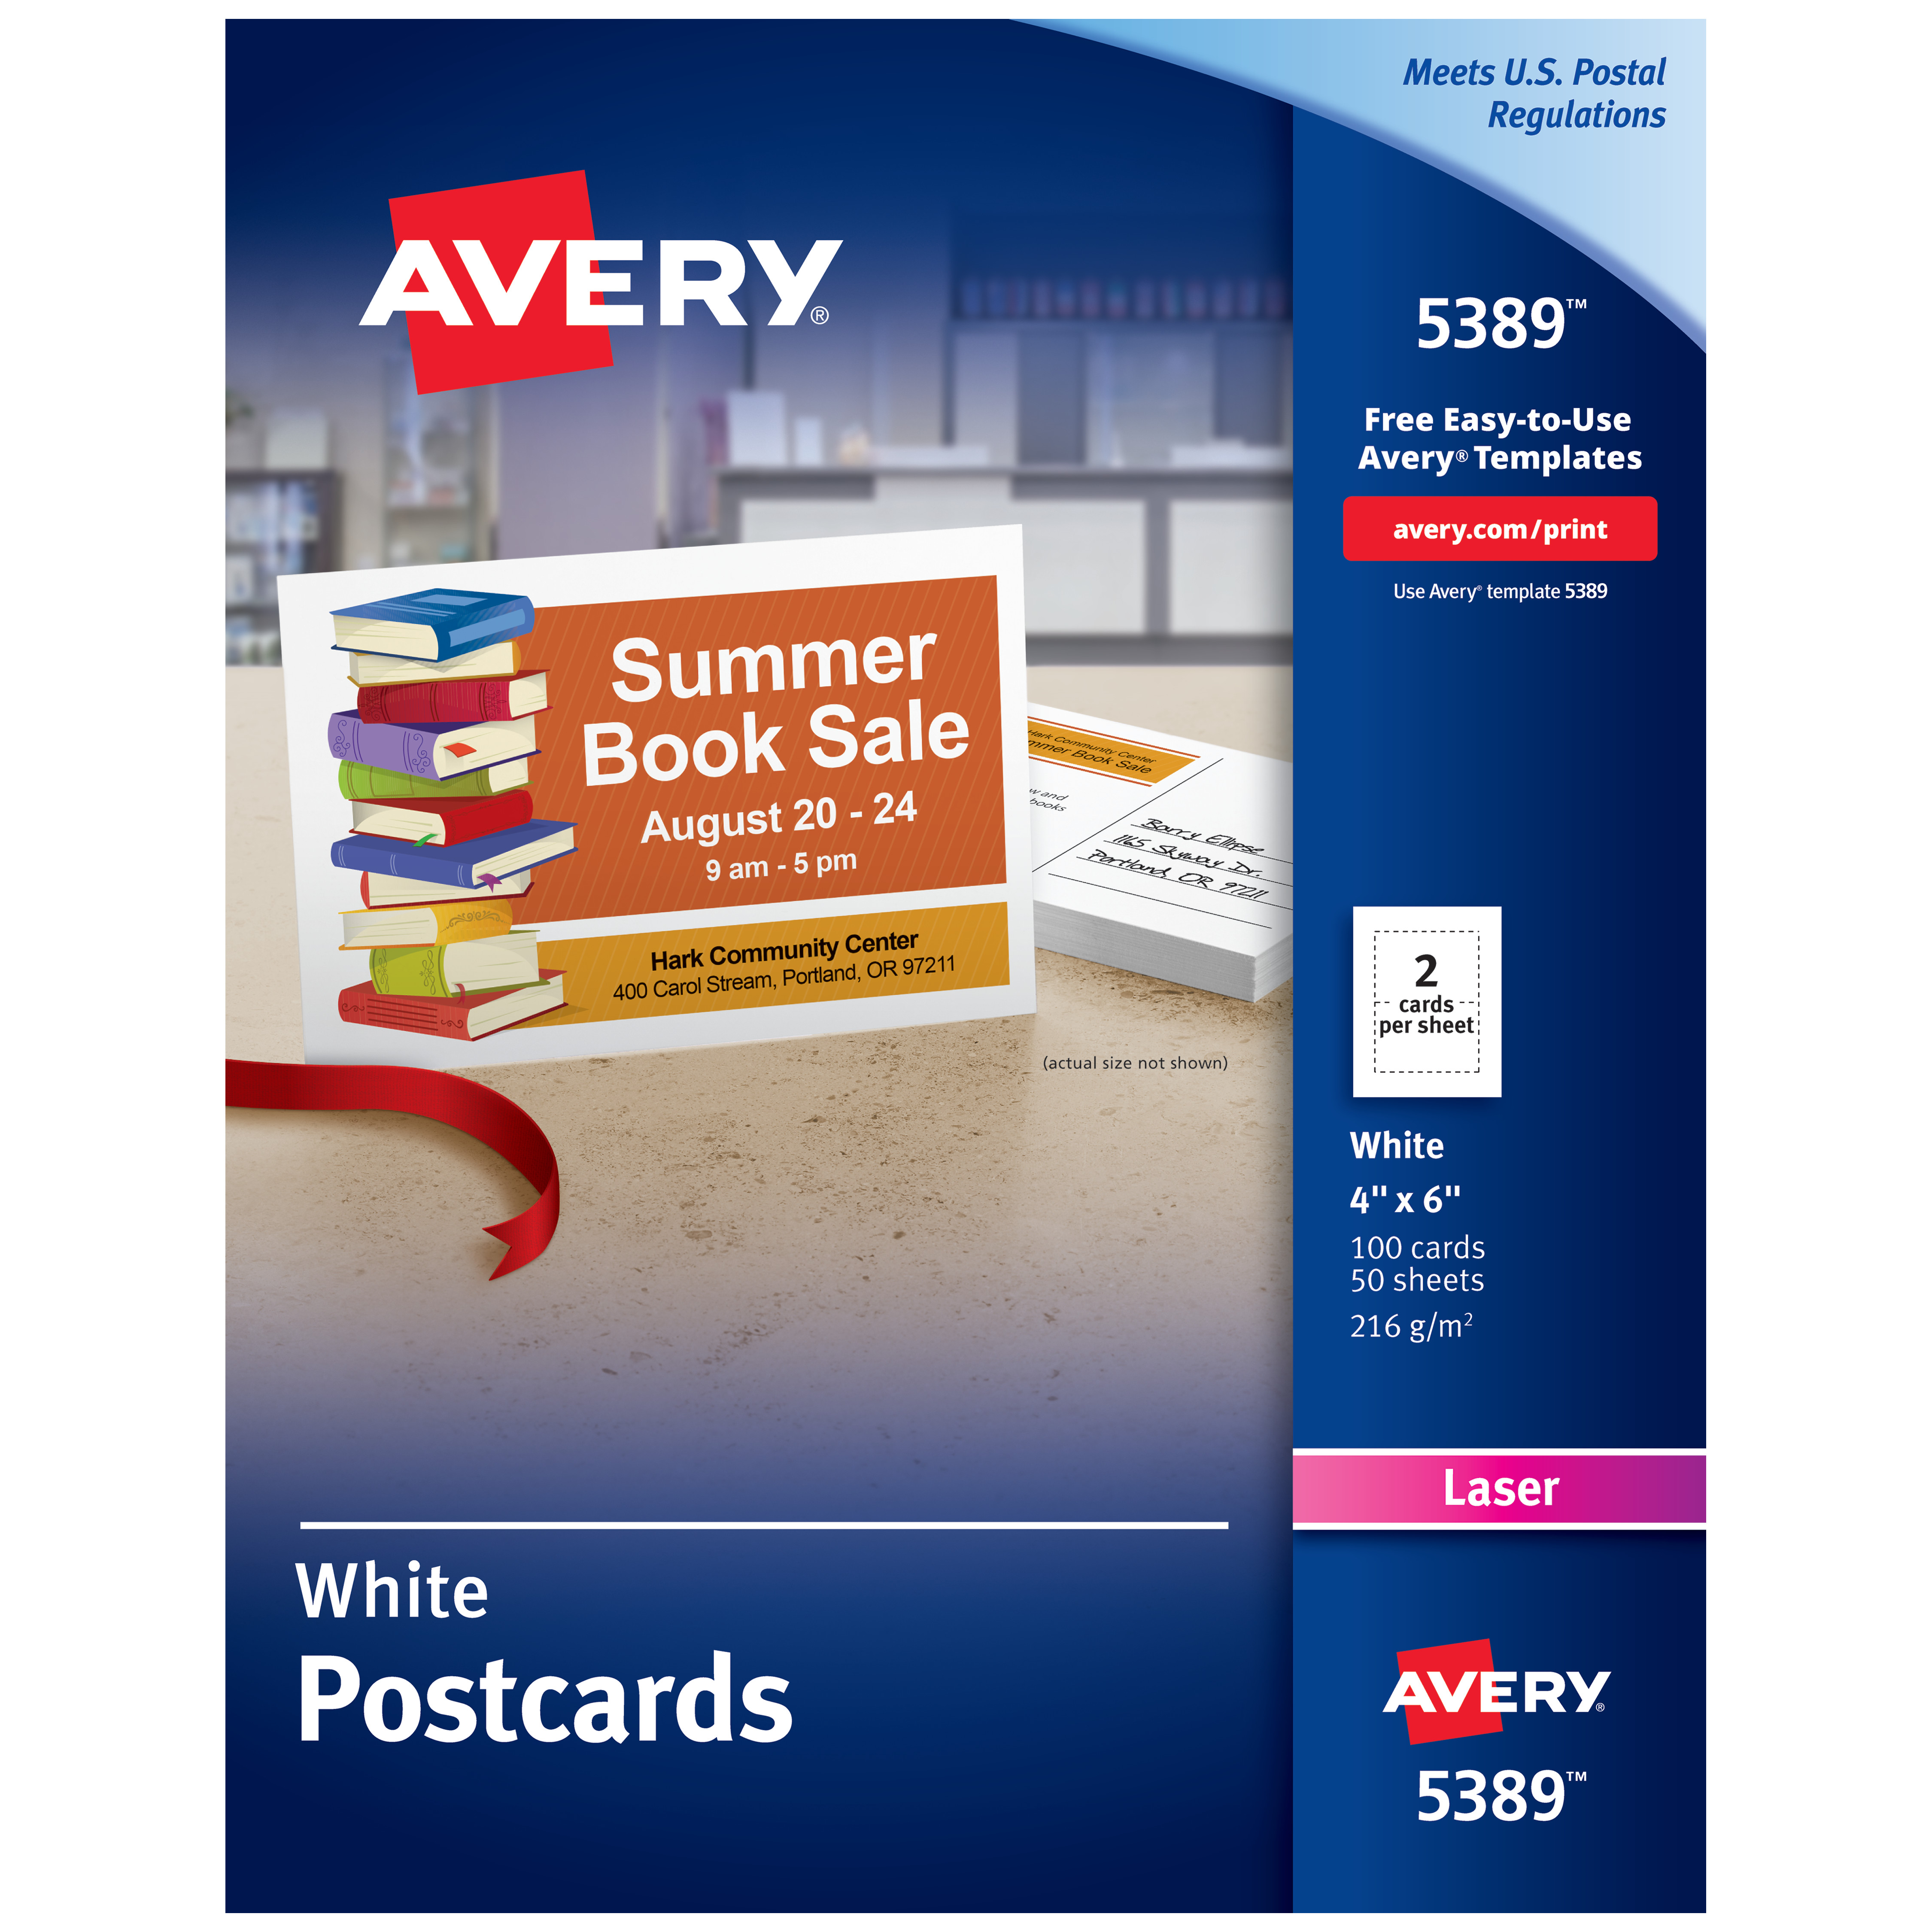 Avery Printable Cards, Laser Printers, 100 Cards, 4 x 6, U.S. Post Card Size (5389)